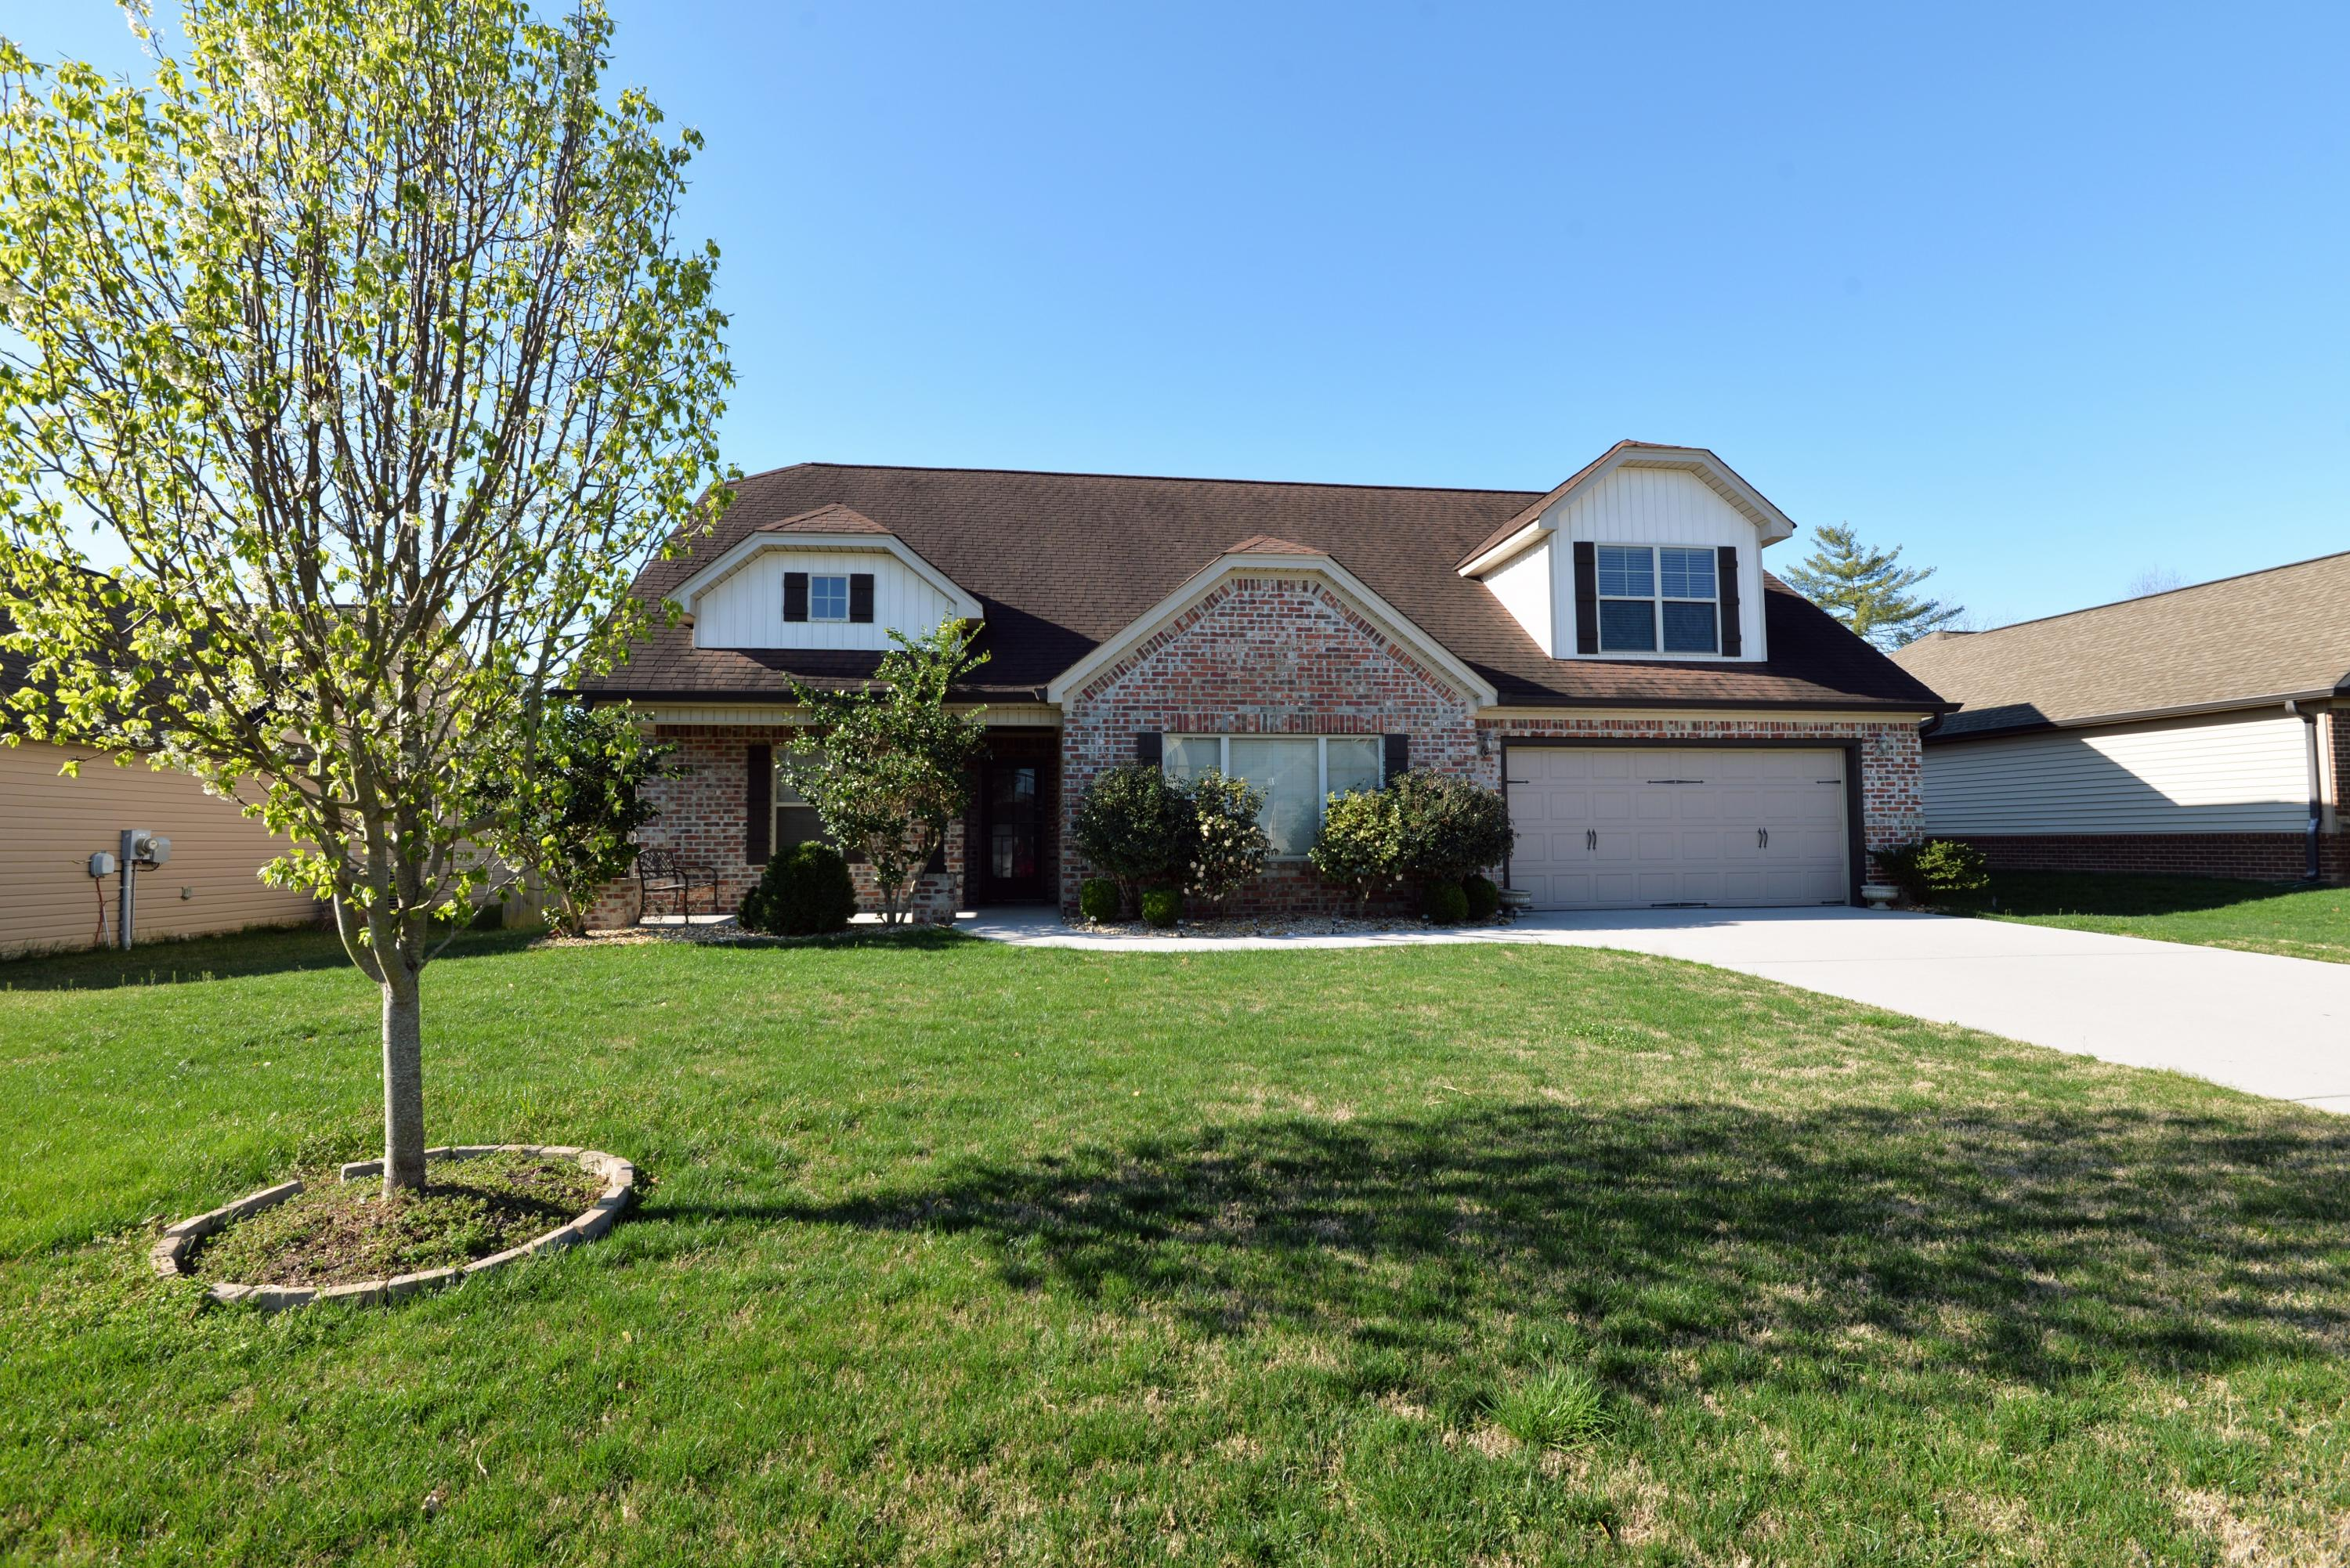 Details for 3384 Willow Lake, Chattanooga, TN 37419